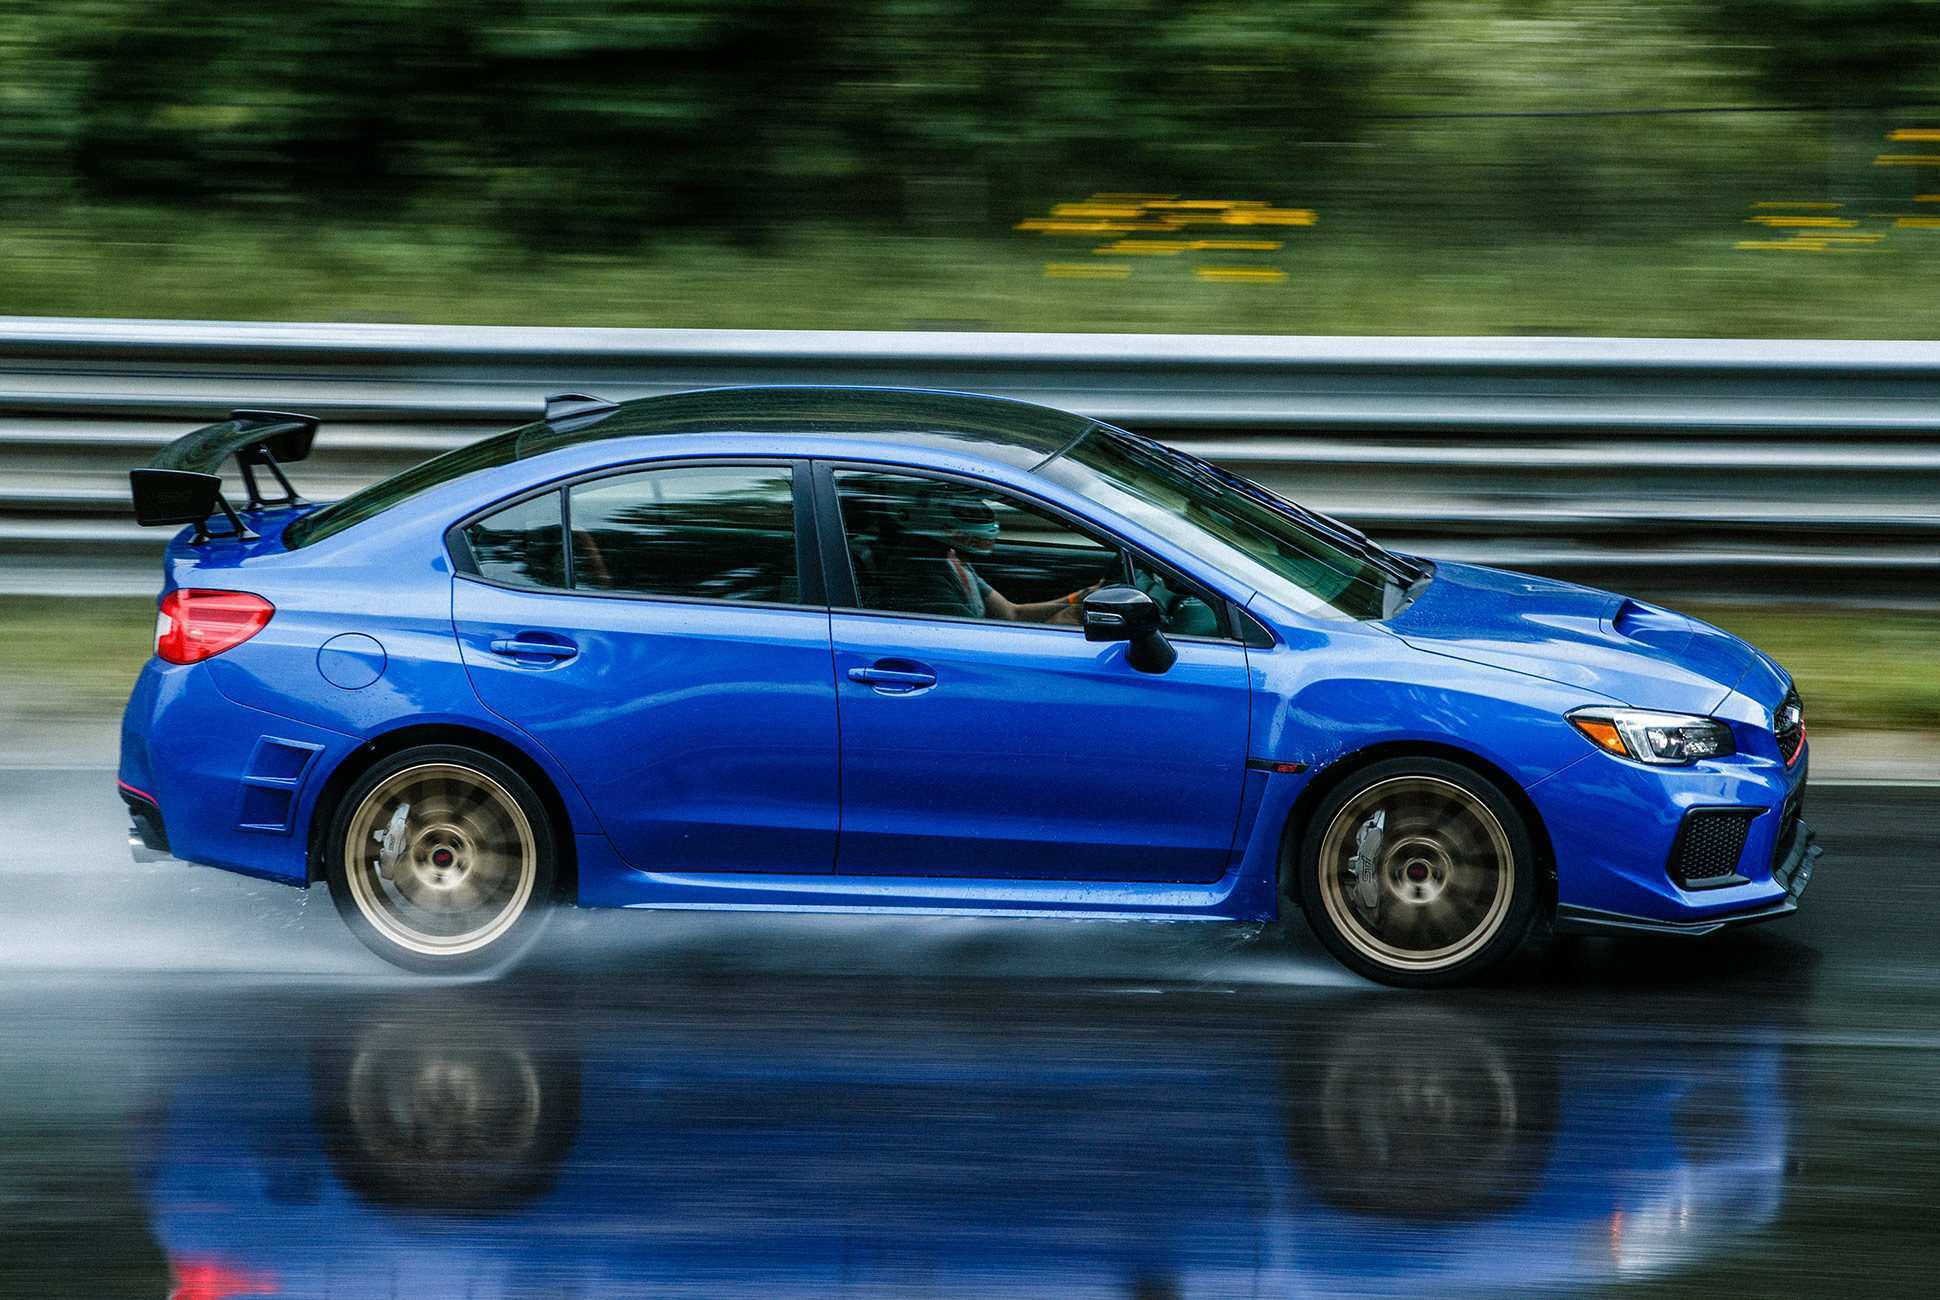 26 New 2019 Subaru Wrx Sti Review Images with 2019 Subaru Wrx Sti Review